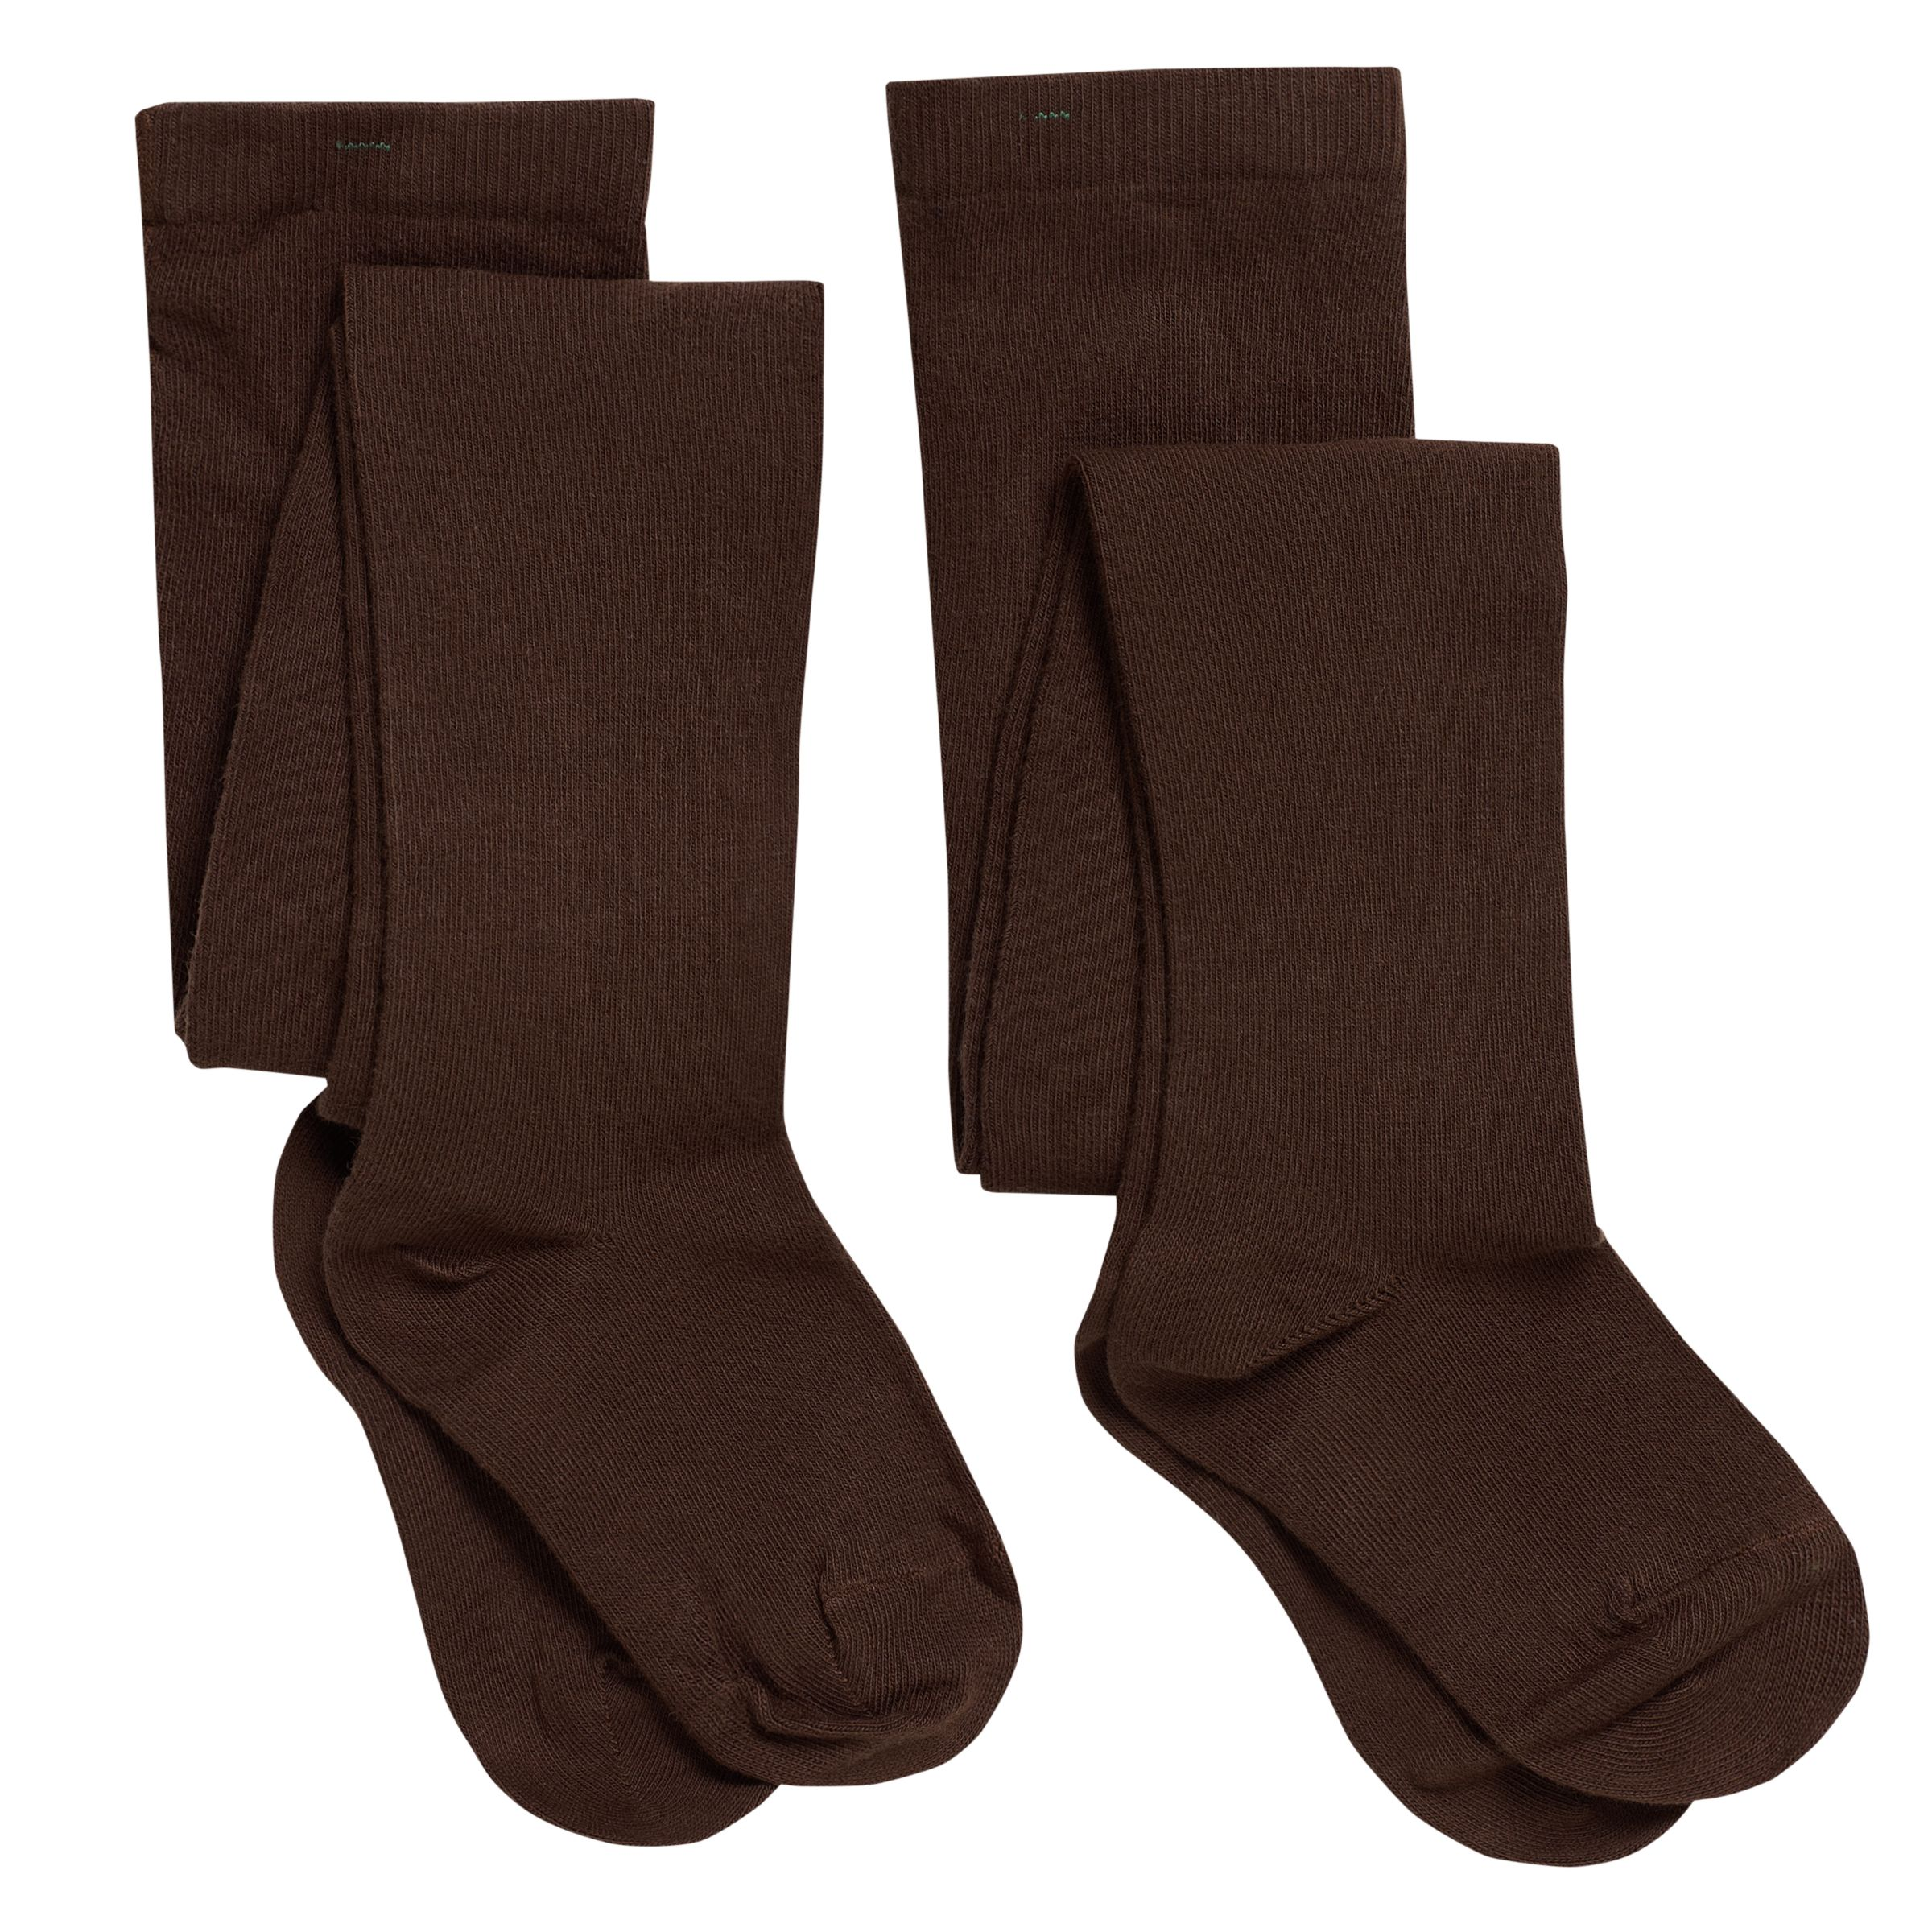 John Lewis Girl Cotton Tights, Pack of 2, Brown